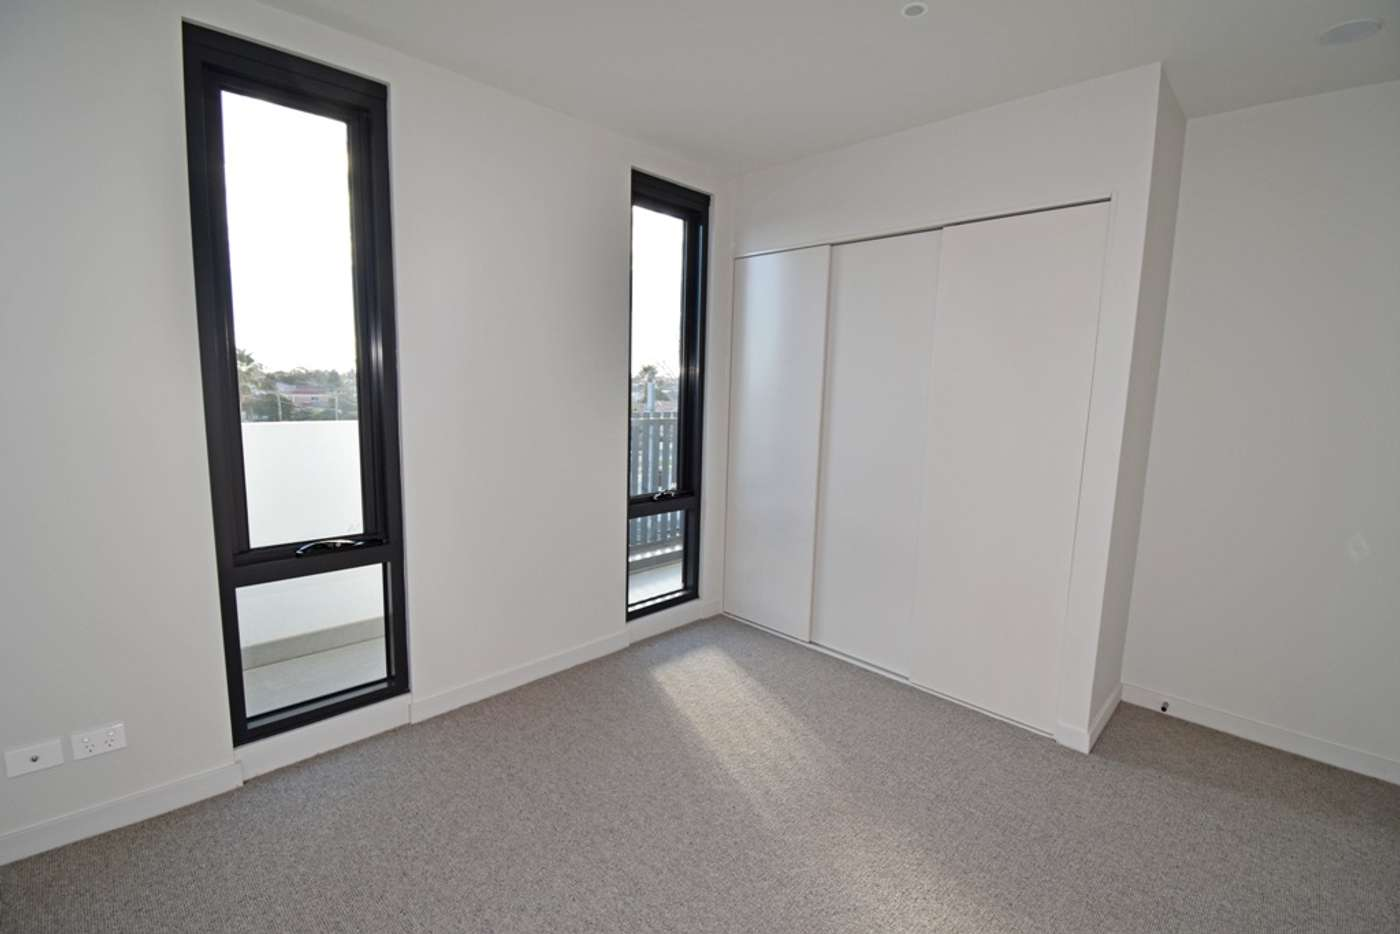 Seventh view of Homely apartment listing, 204/23 Bent Street, Bentleigh VIC 3204